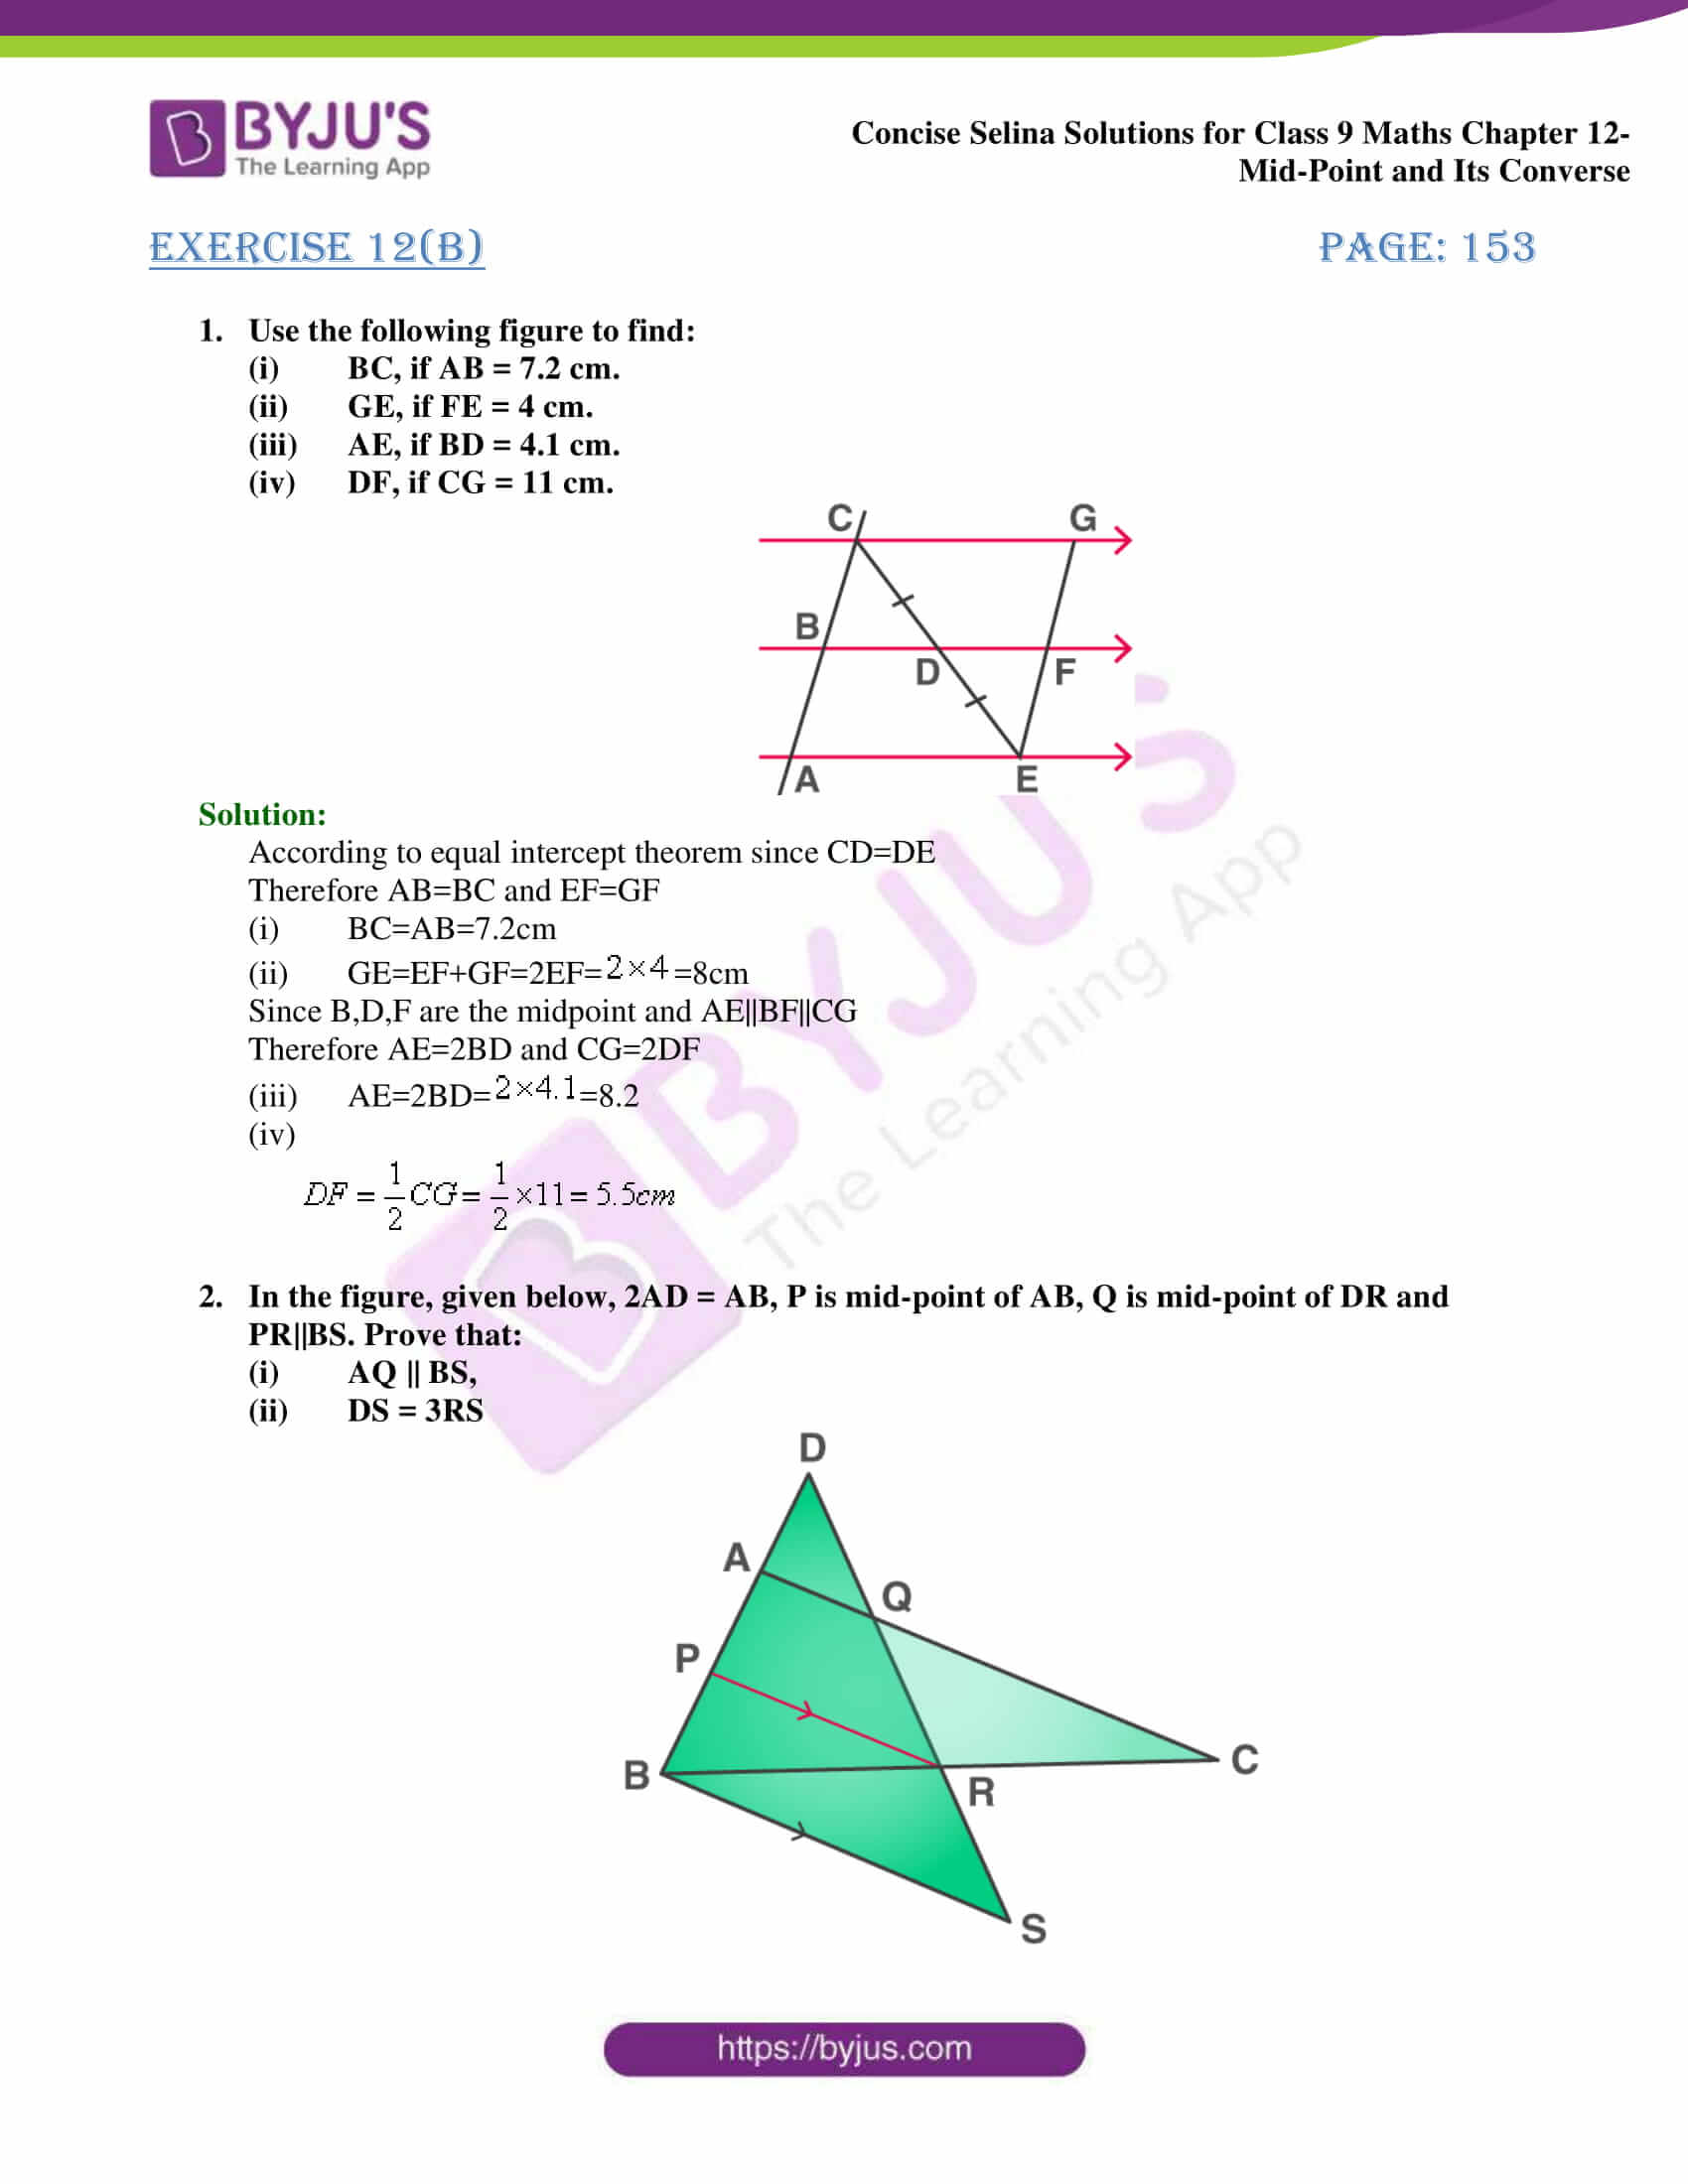 selina Solutions for Class 9 Maths Chapter 12 part 13